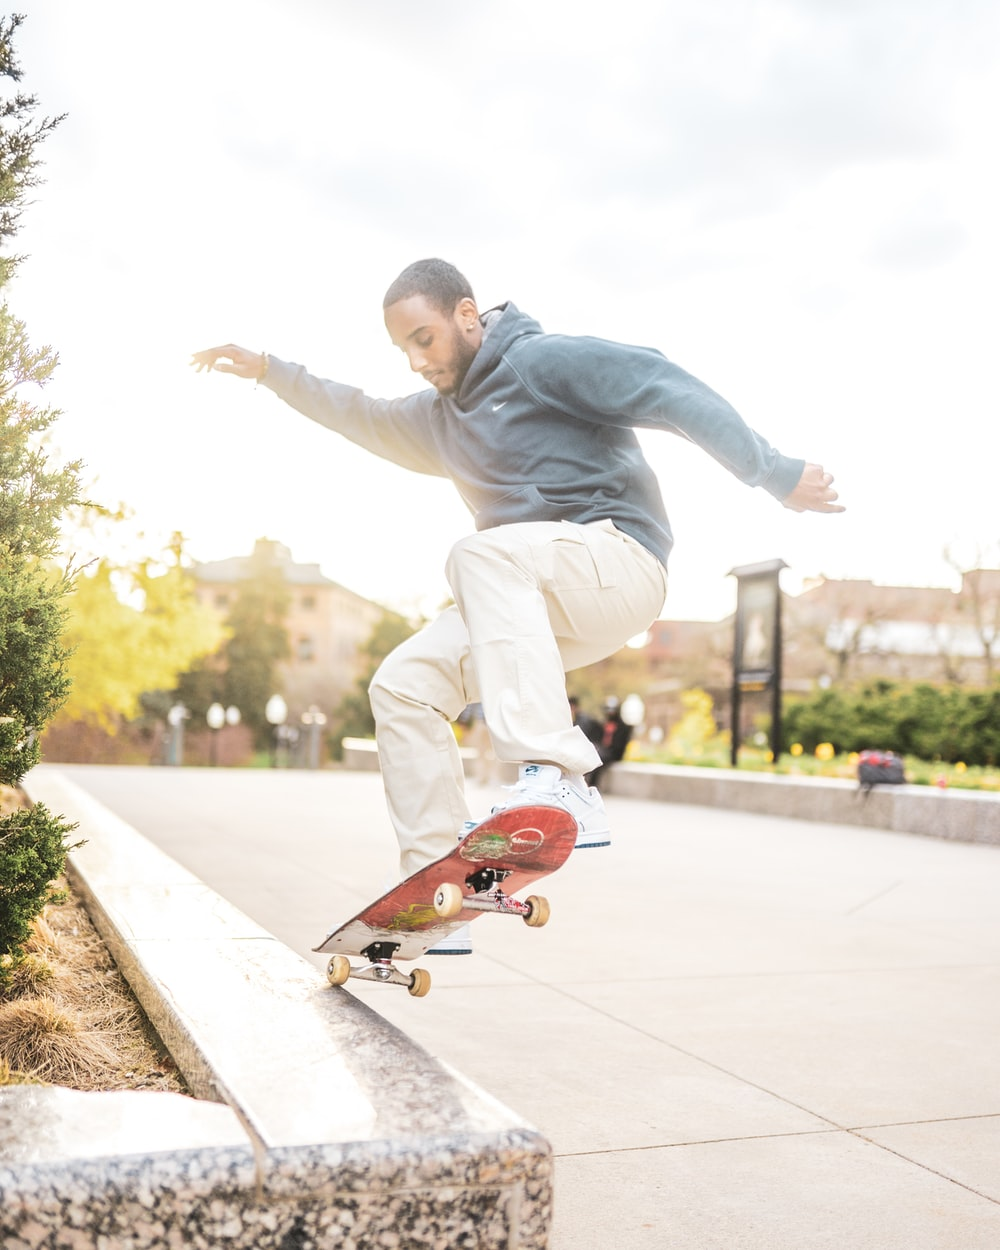 man in gray hoodie and brown pants riding skateboard during daytime